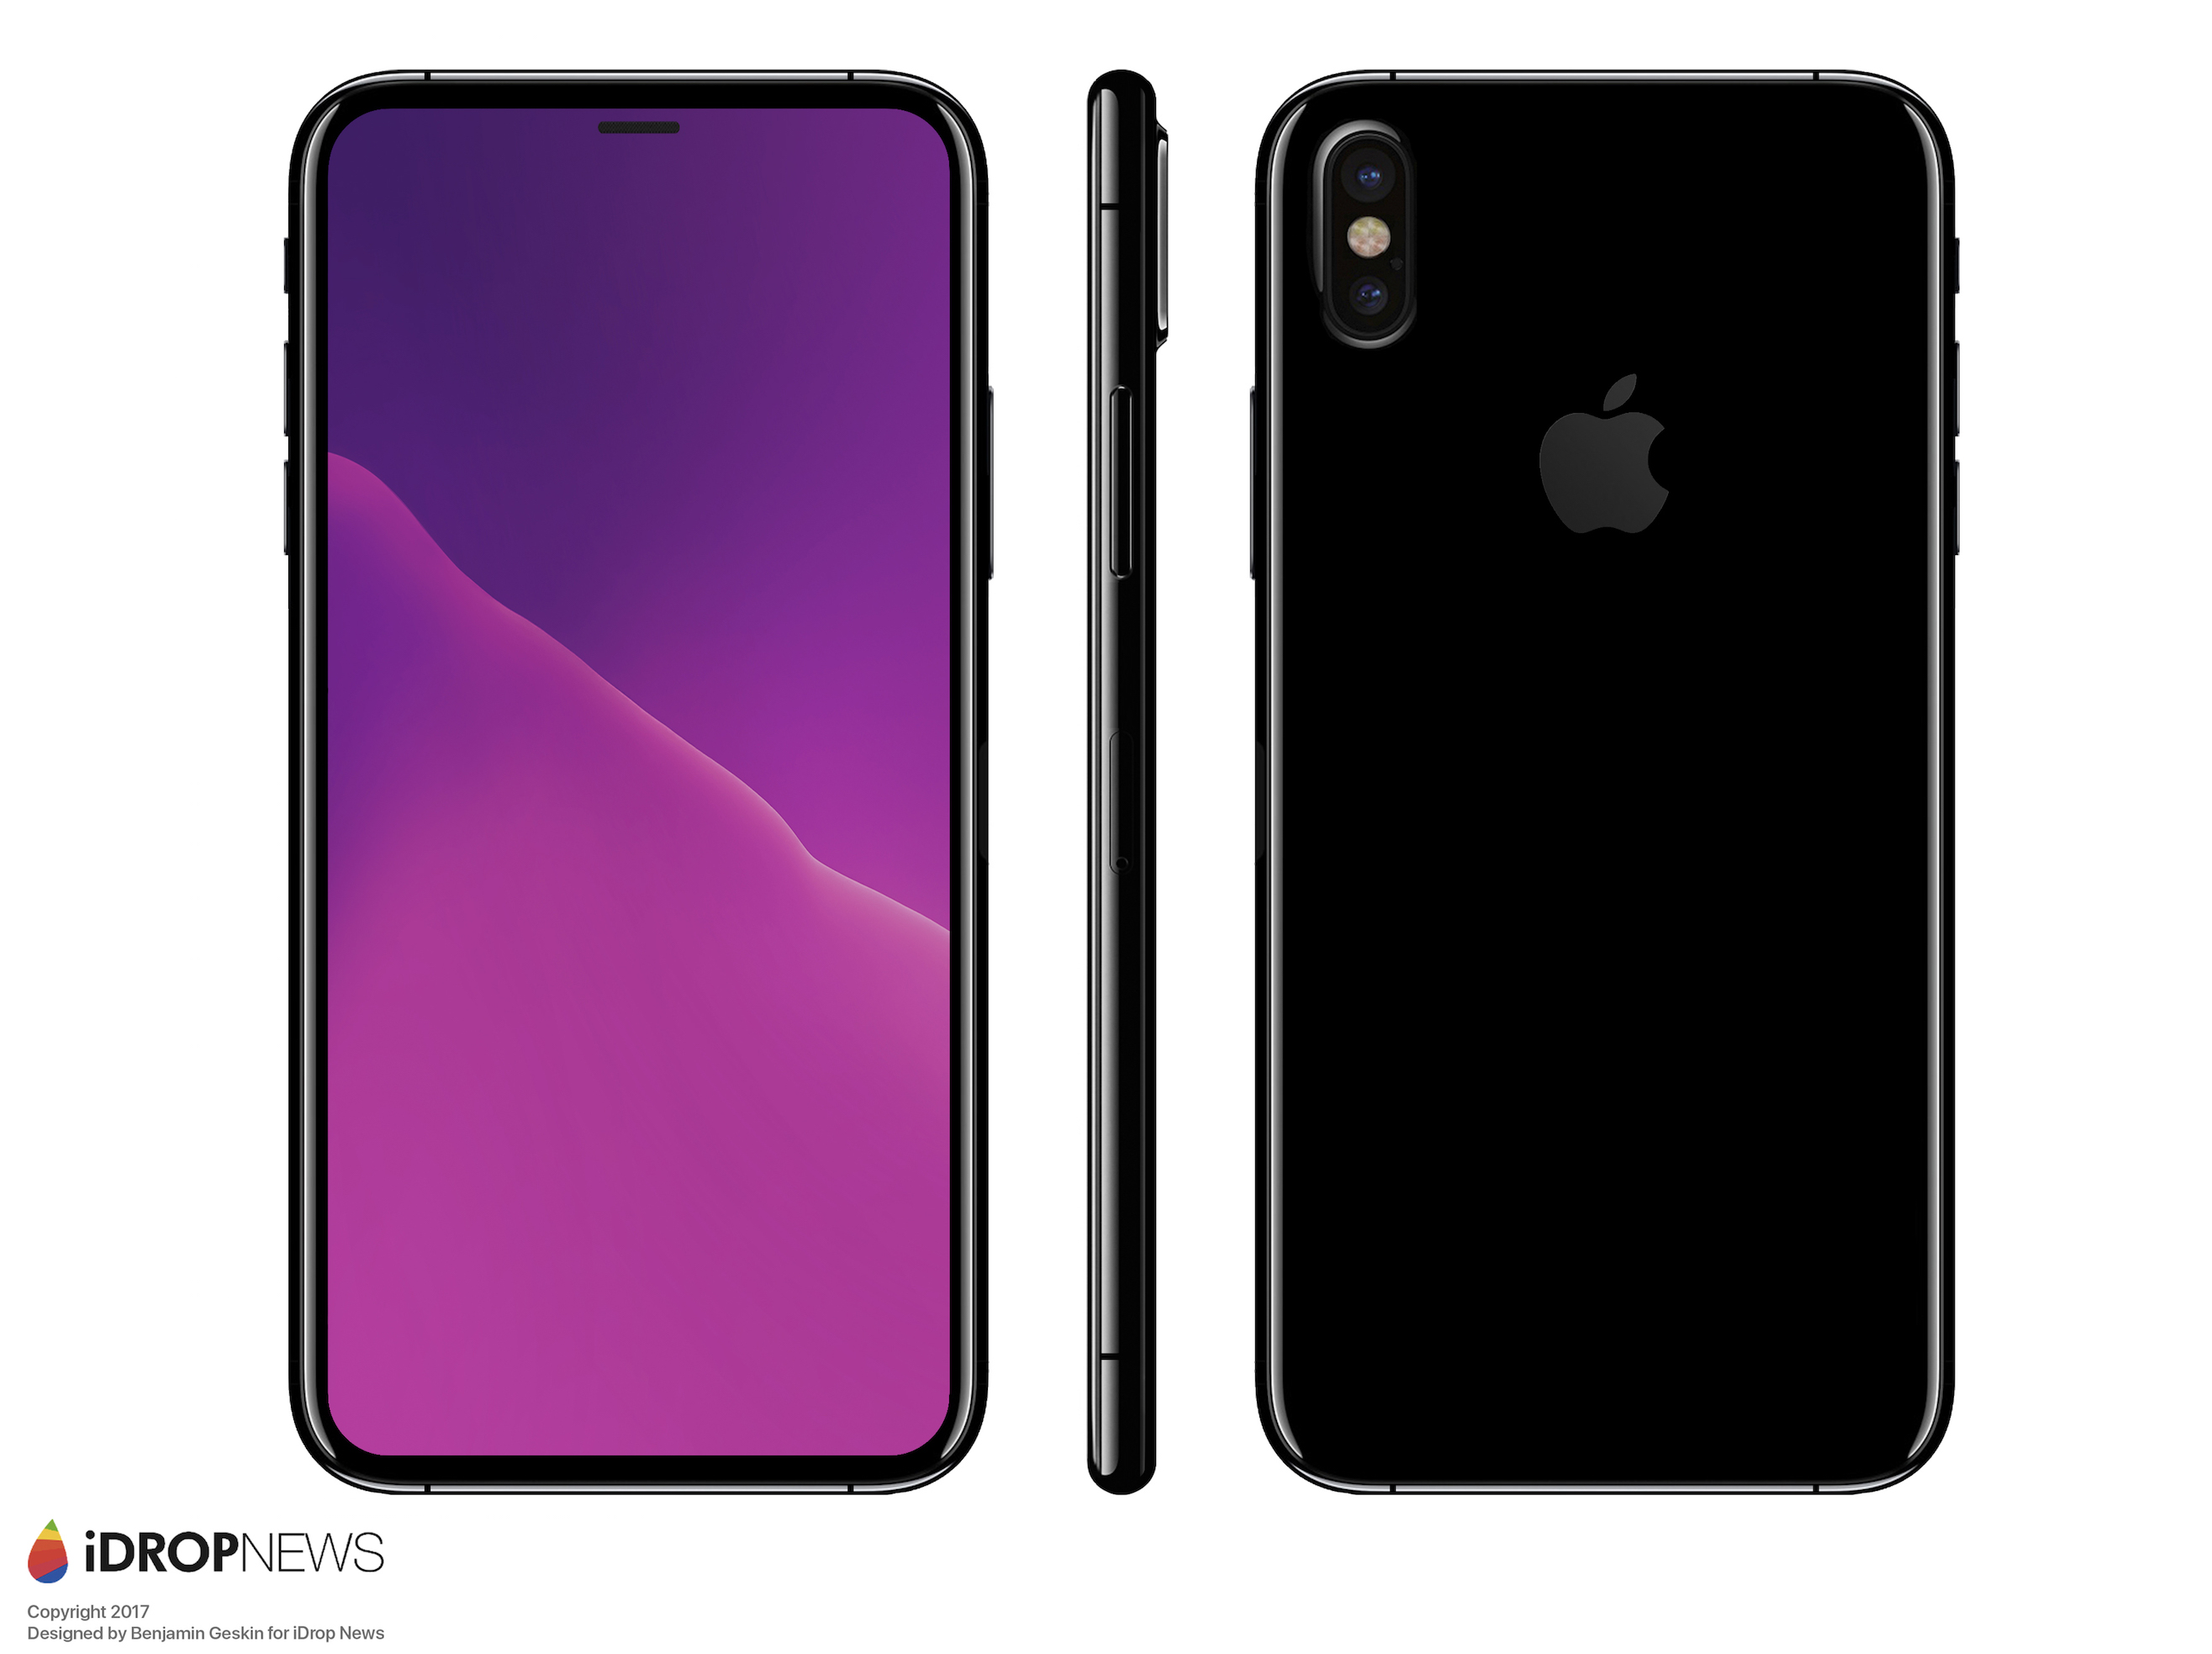 iDrop-News-Exclusive-iPhone-8-Image-7